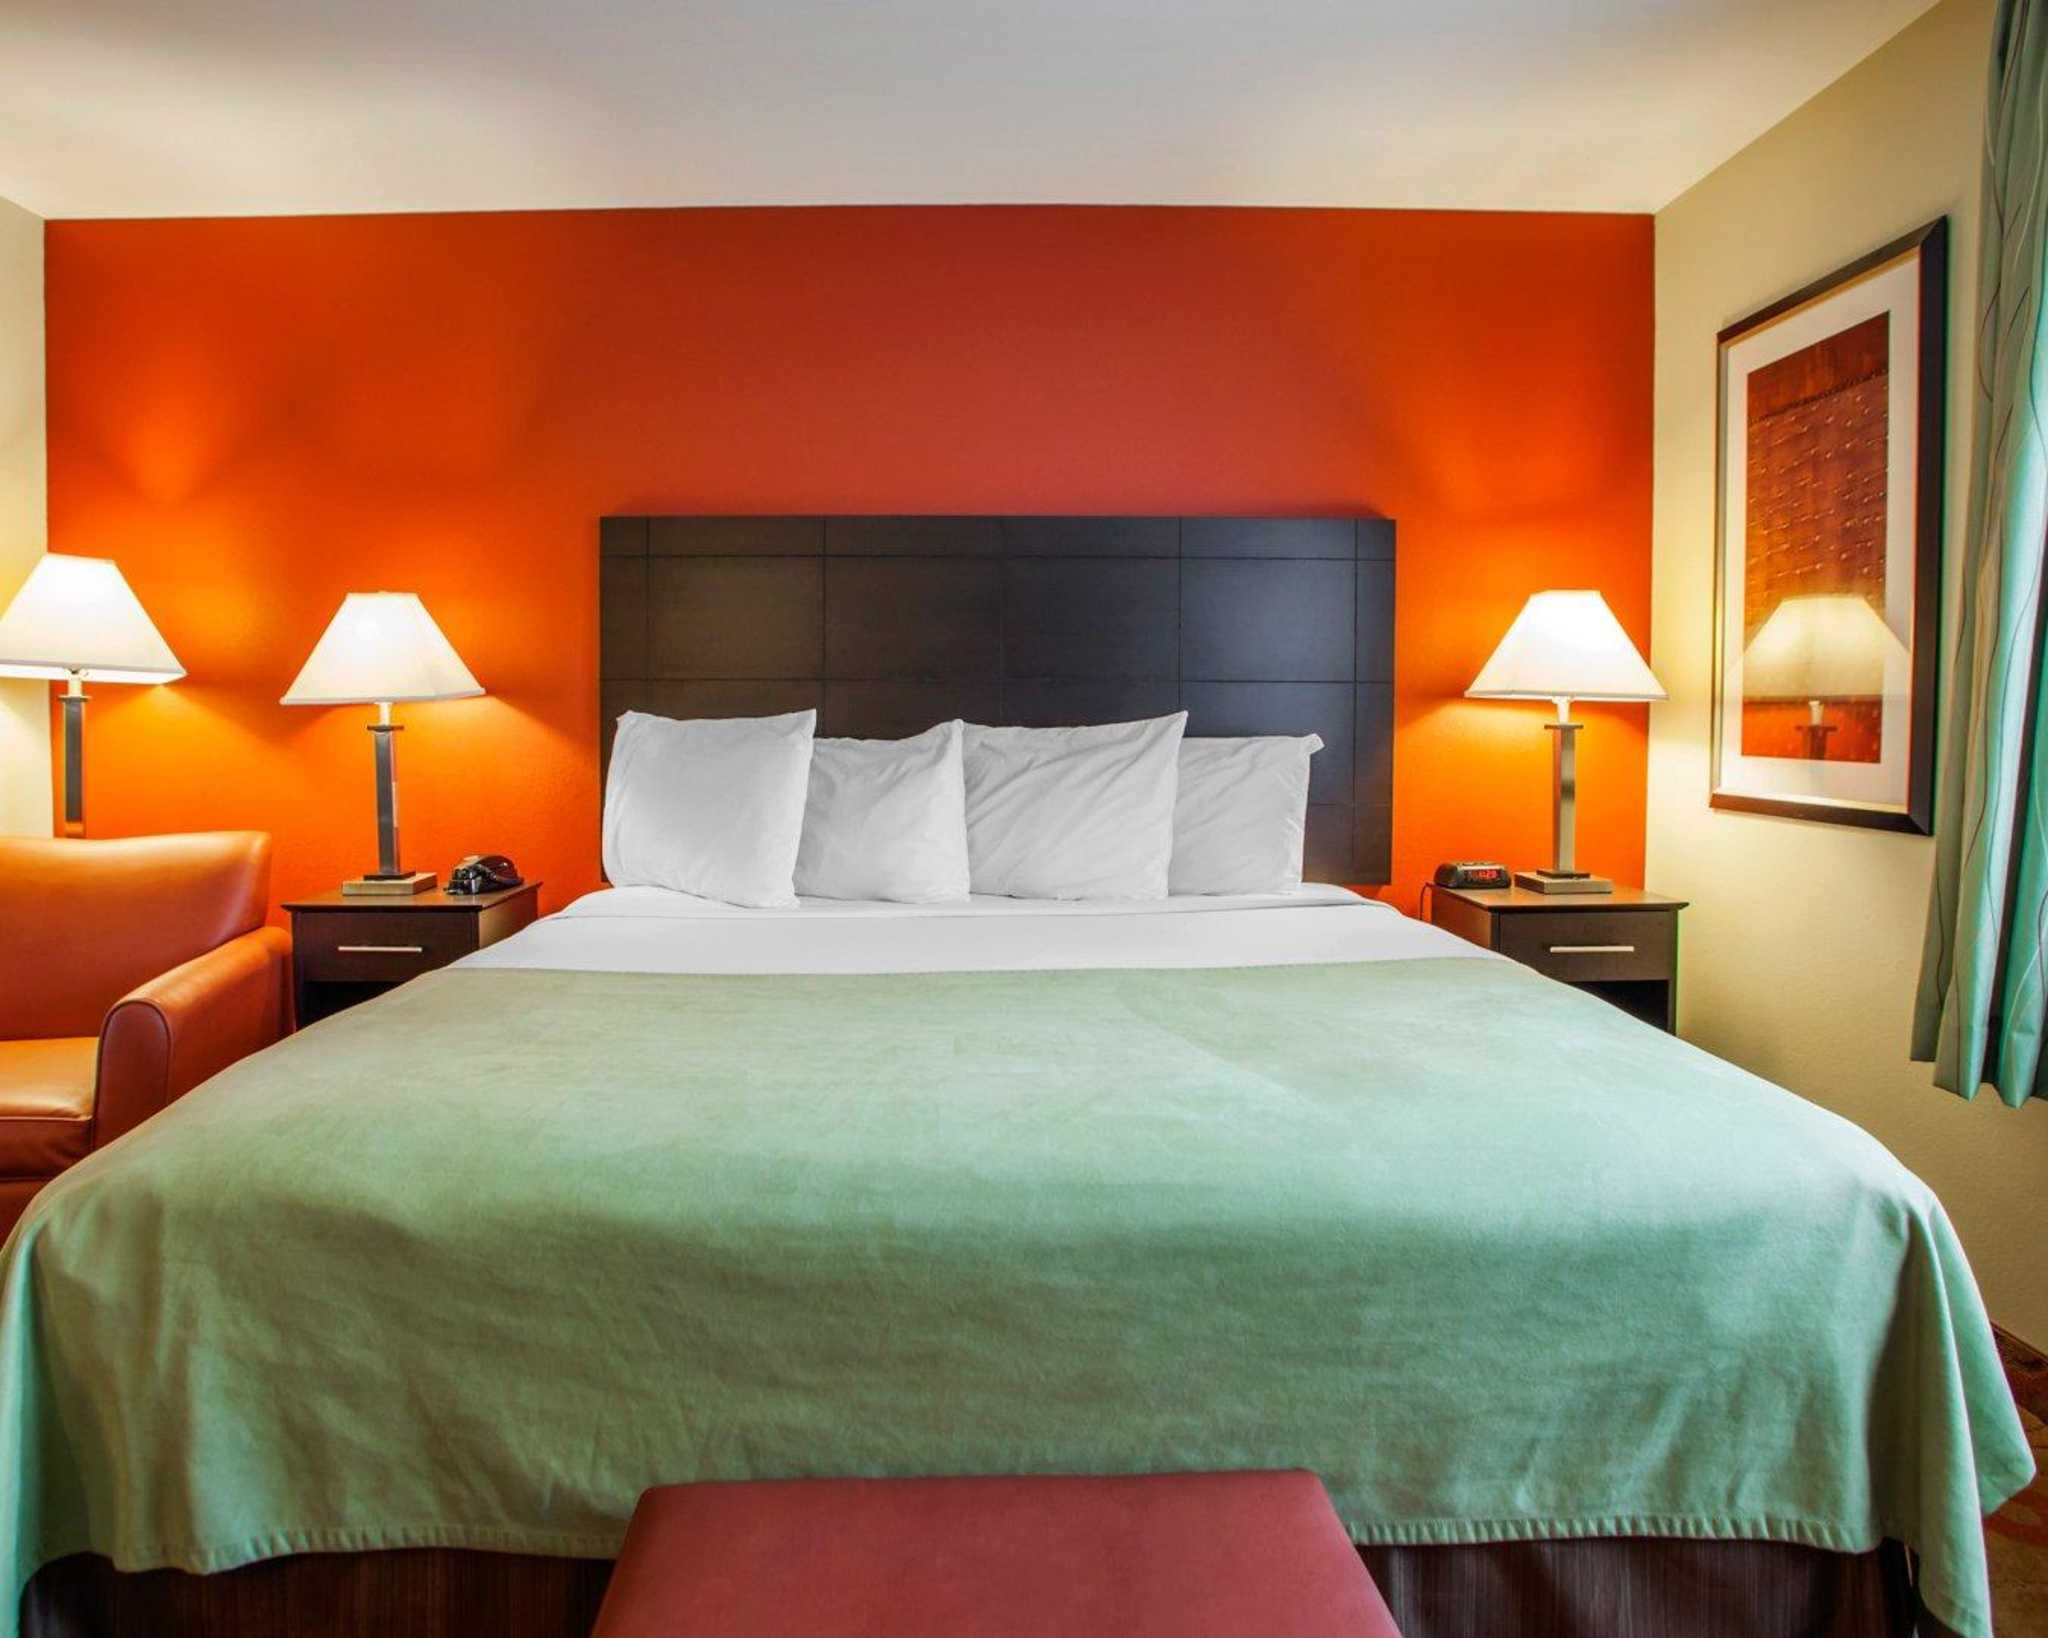 Find Extended Stay Hotels Near Me